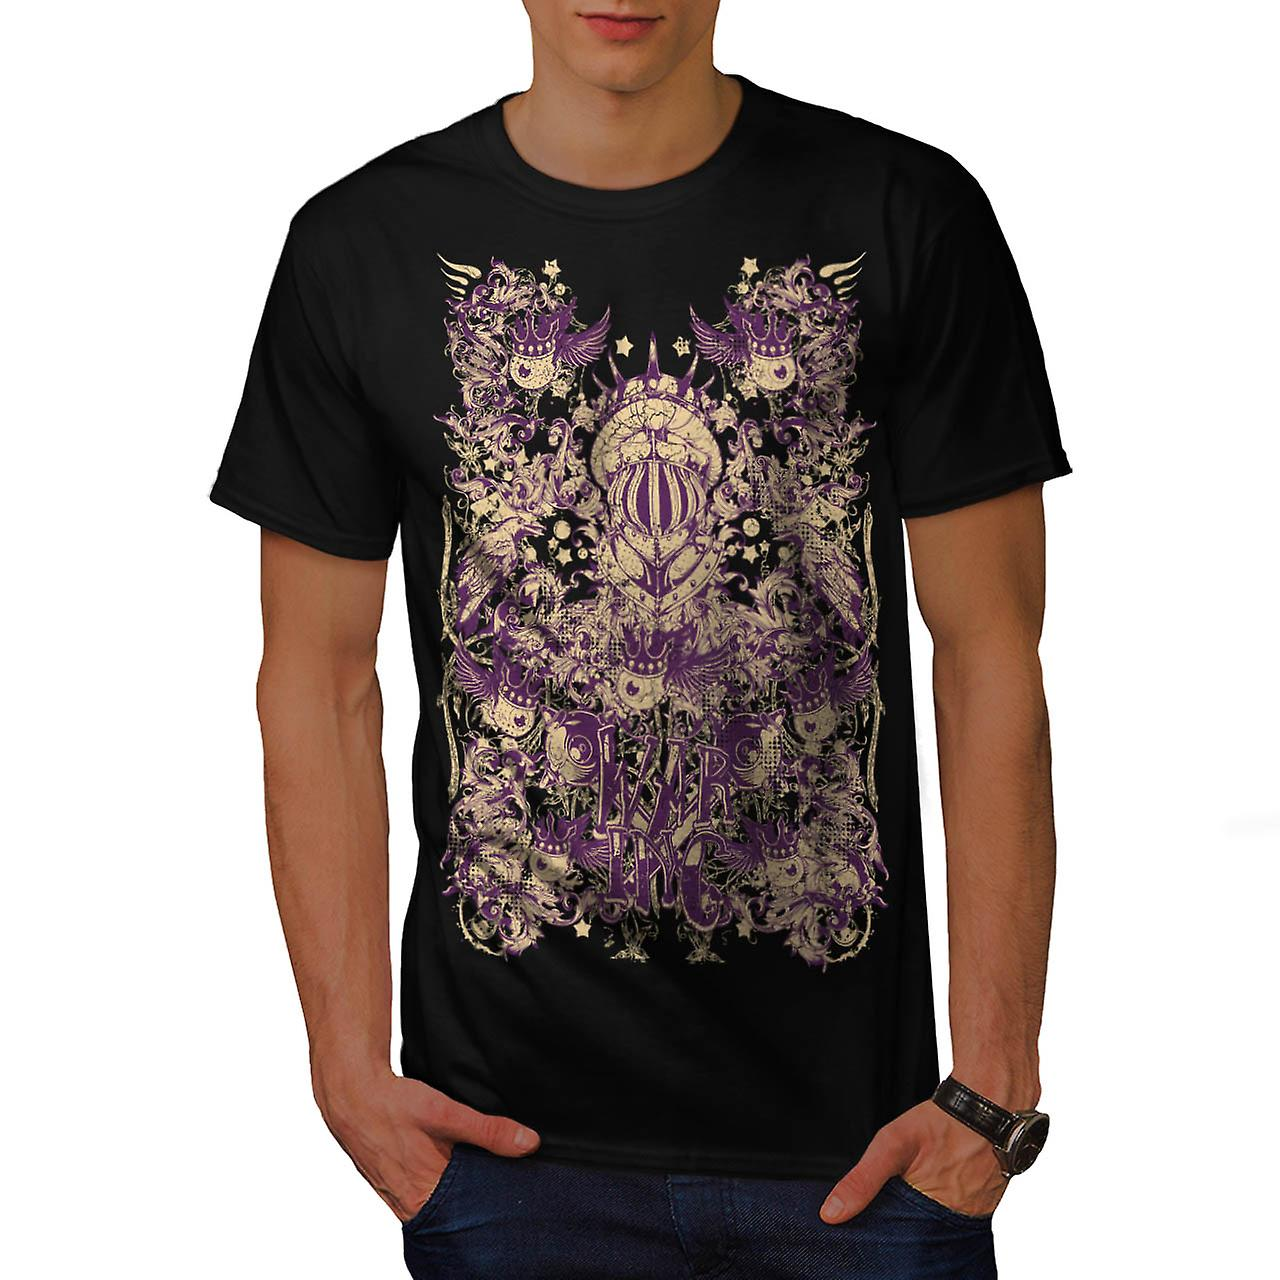 War Inc. Zombie Fashion Men Black T-shirt | Wellcoda